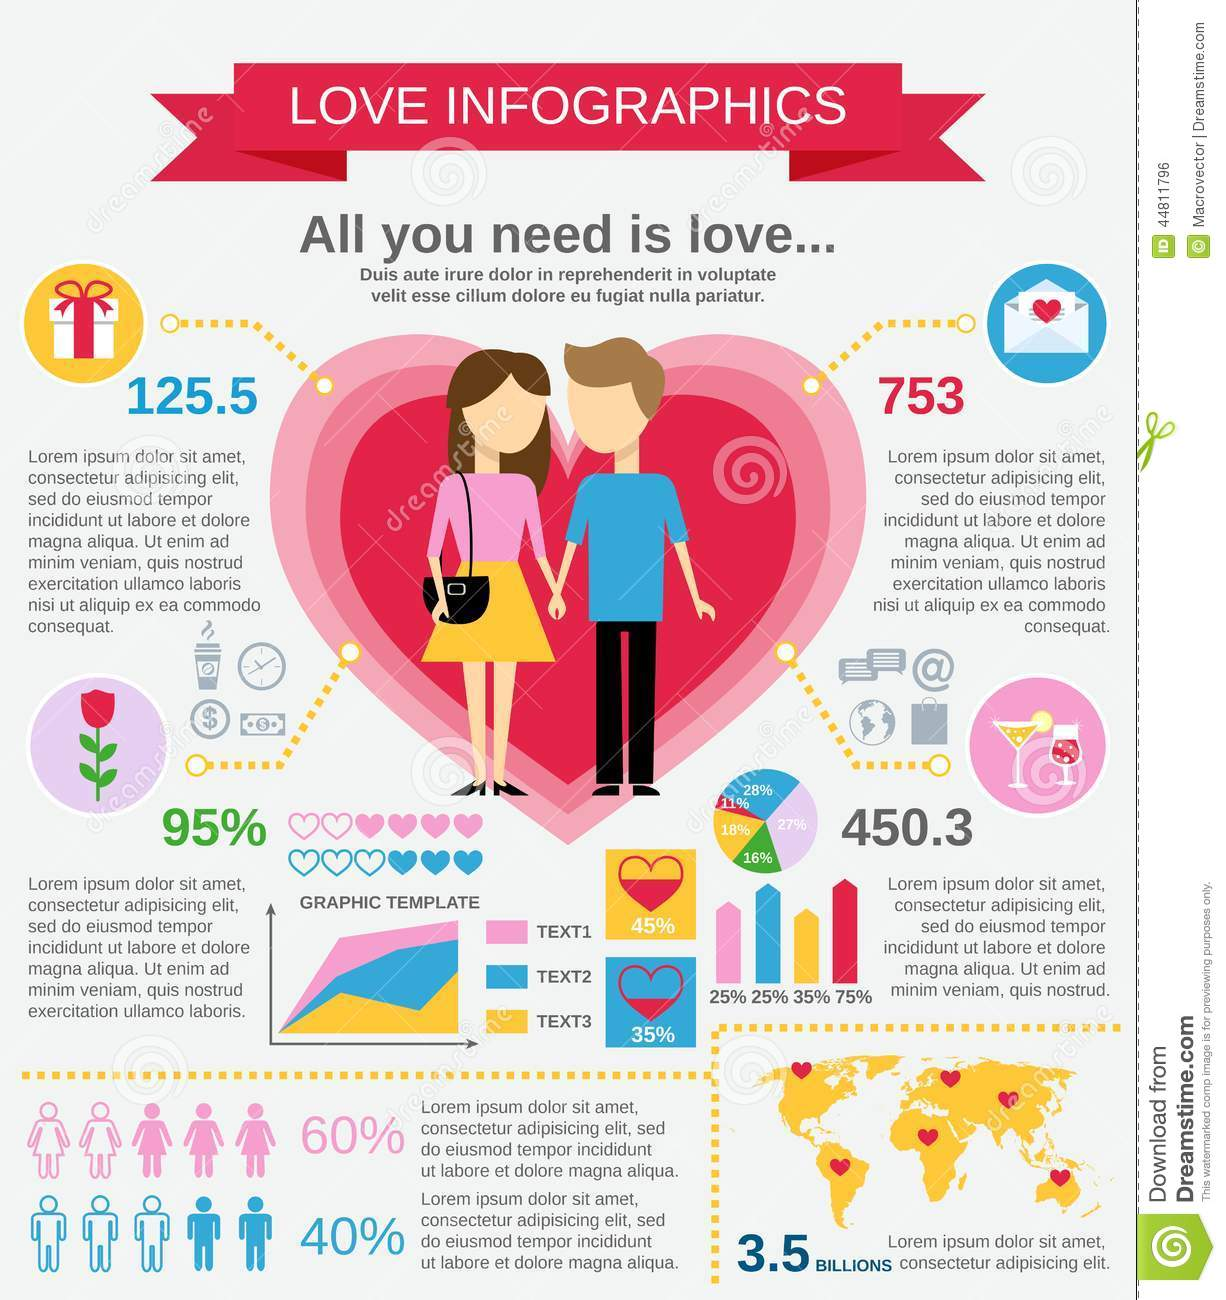 Love Infographic Set Stock Vector - Image: 44811796